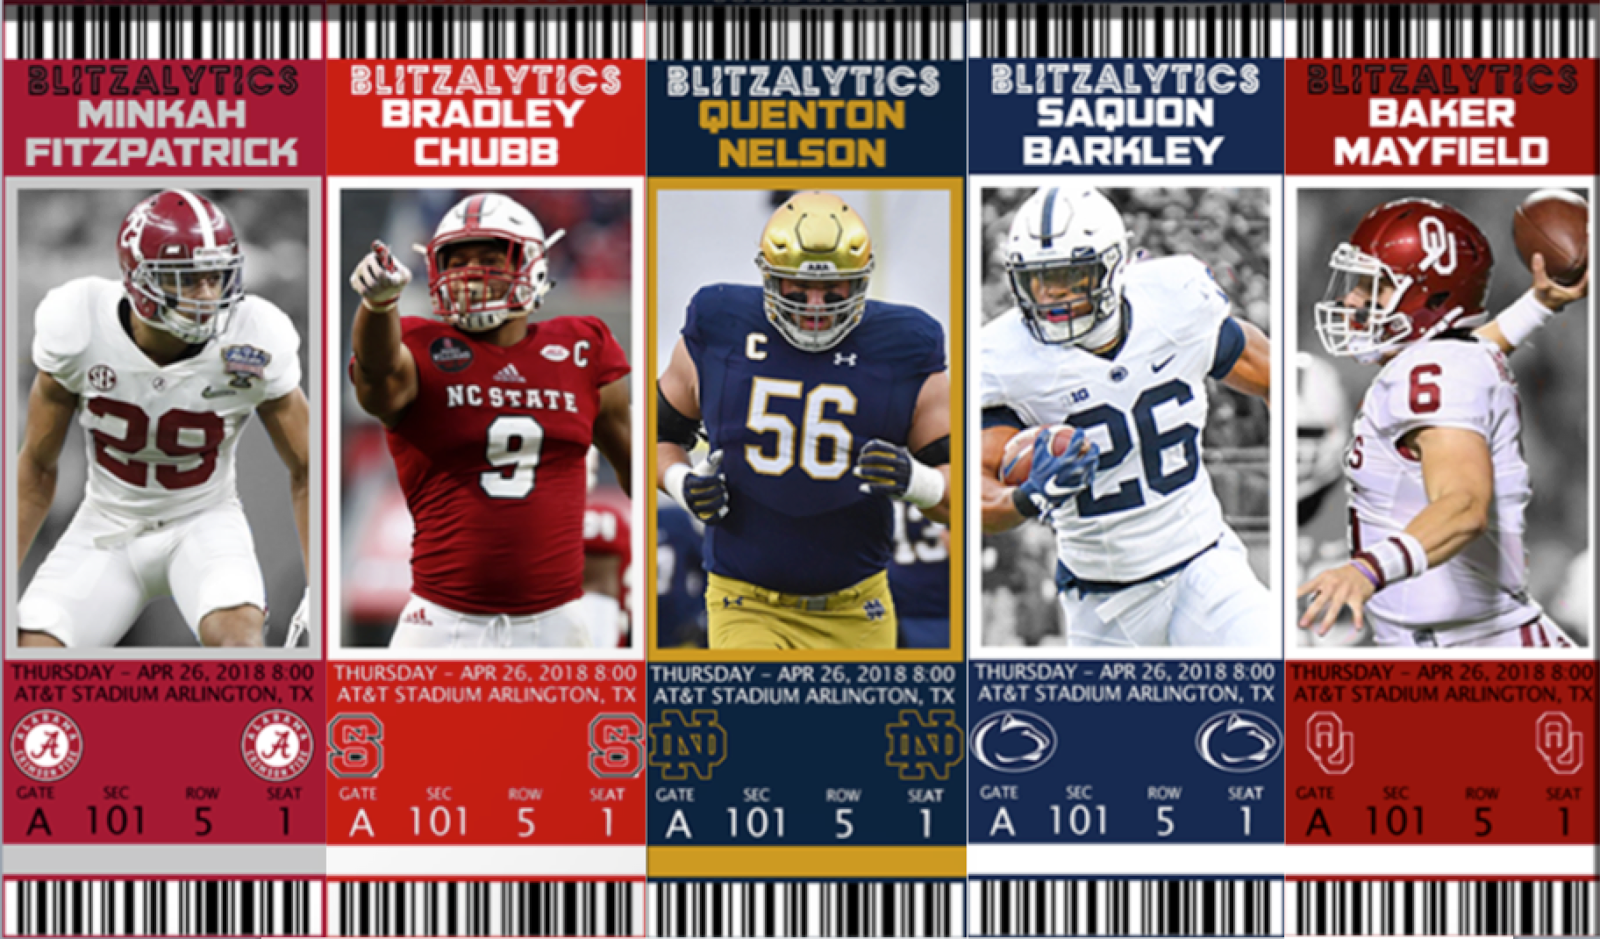 3a83ceeb0 NFL Draft Prospects  Feiner s Rankings By Position – Blitzalytics ...